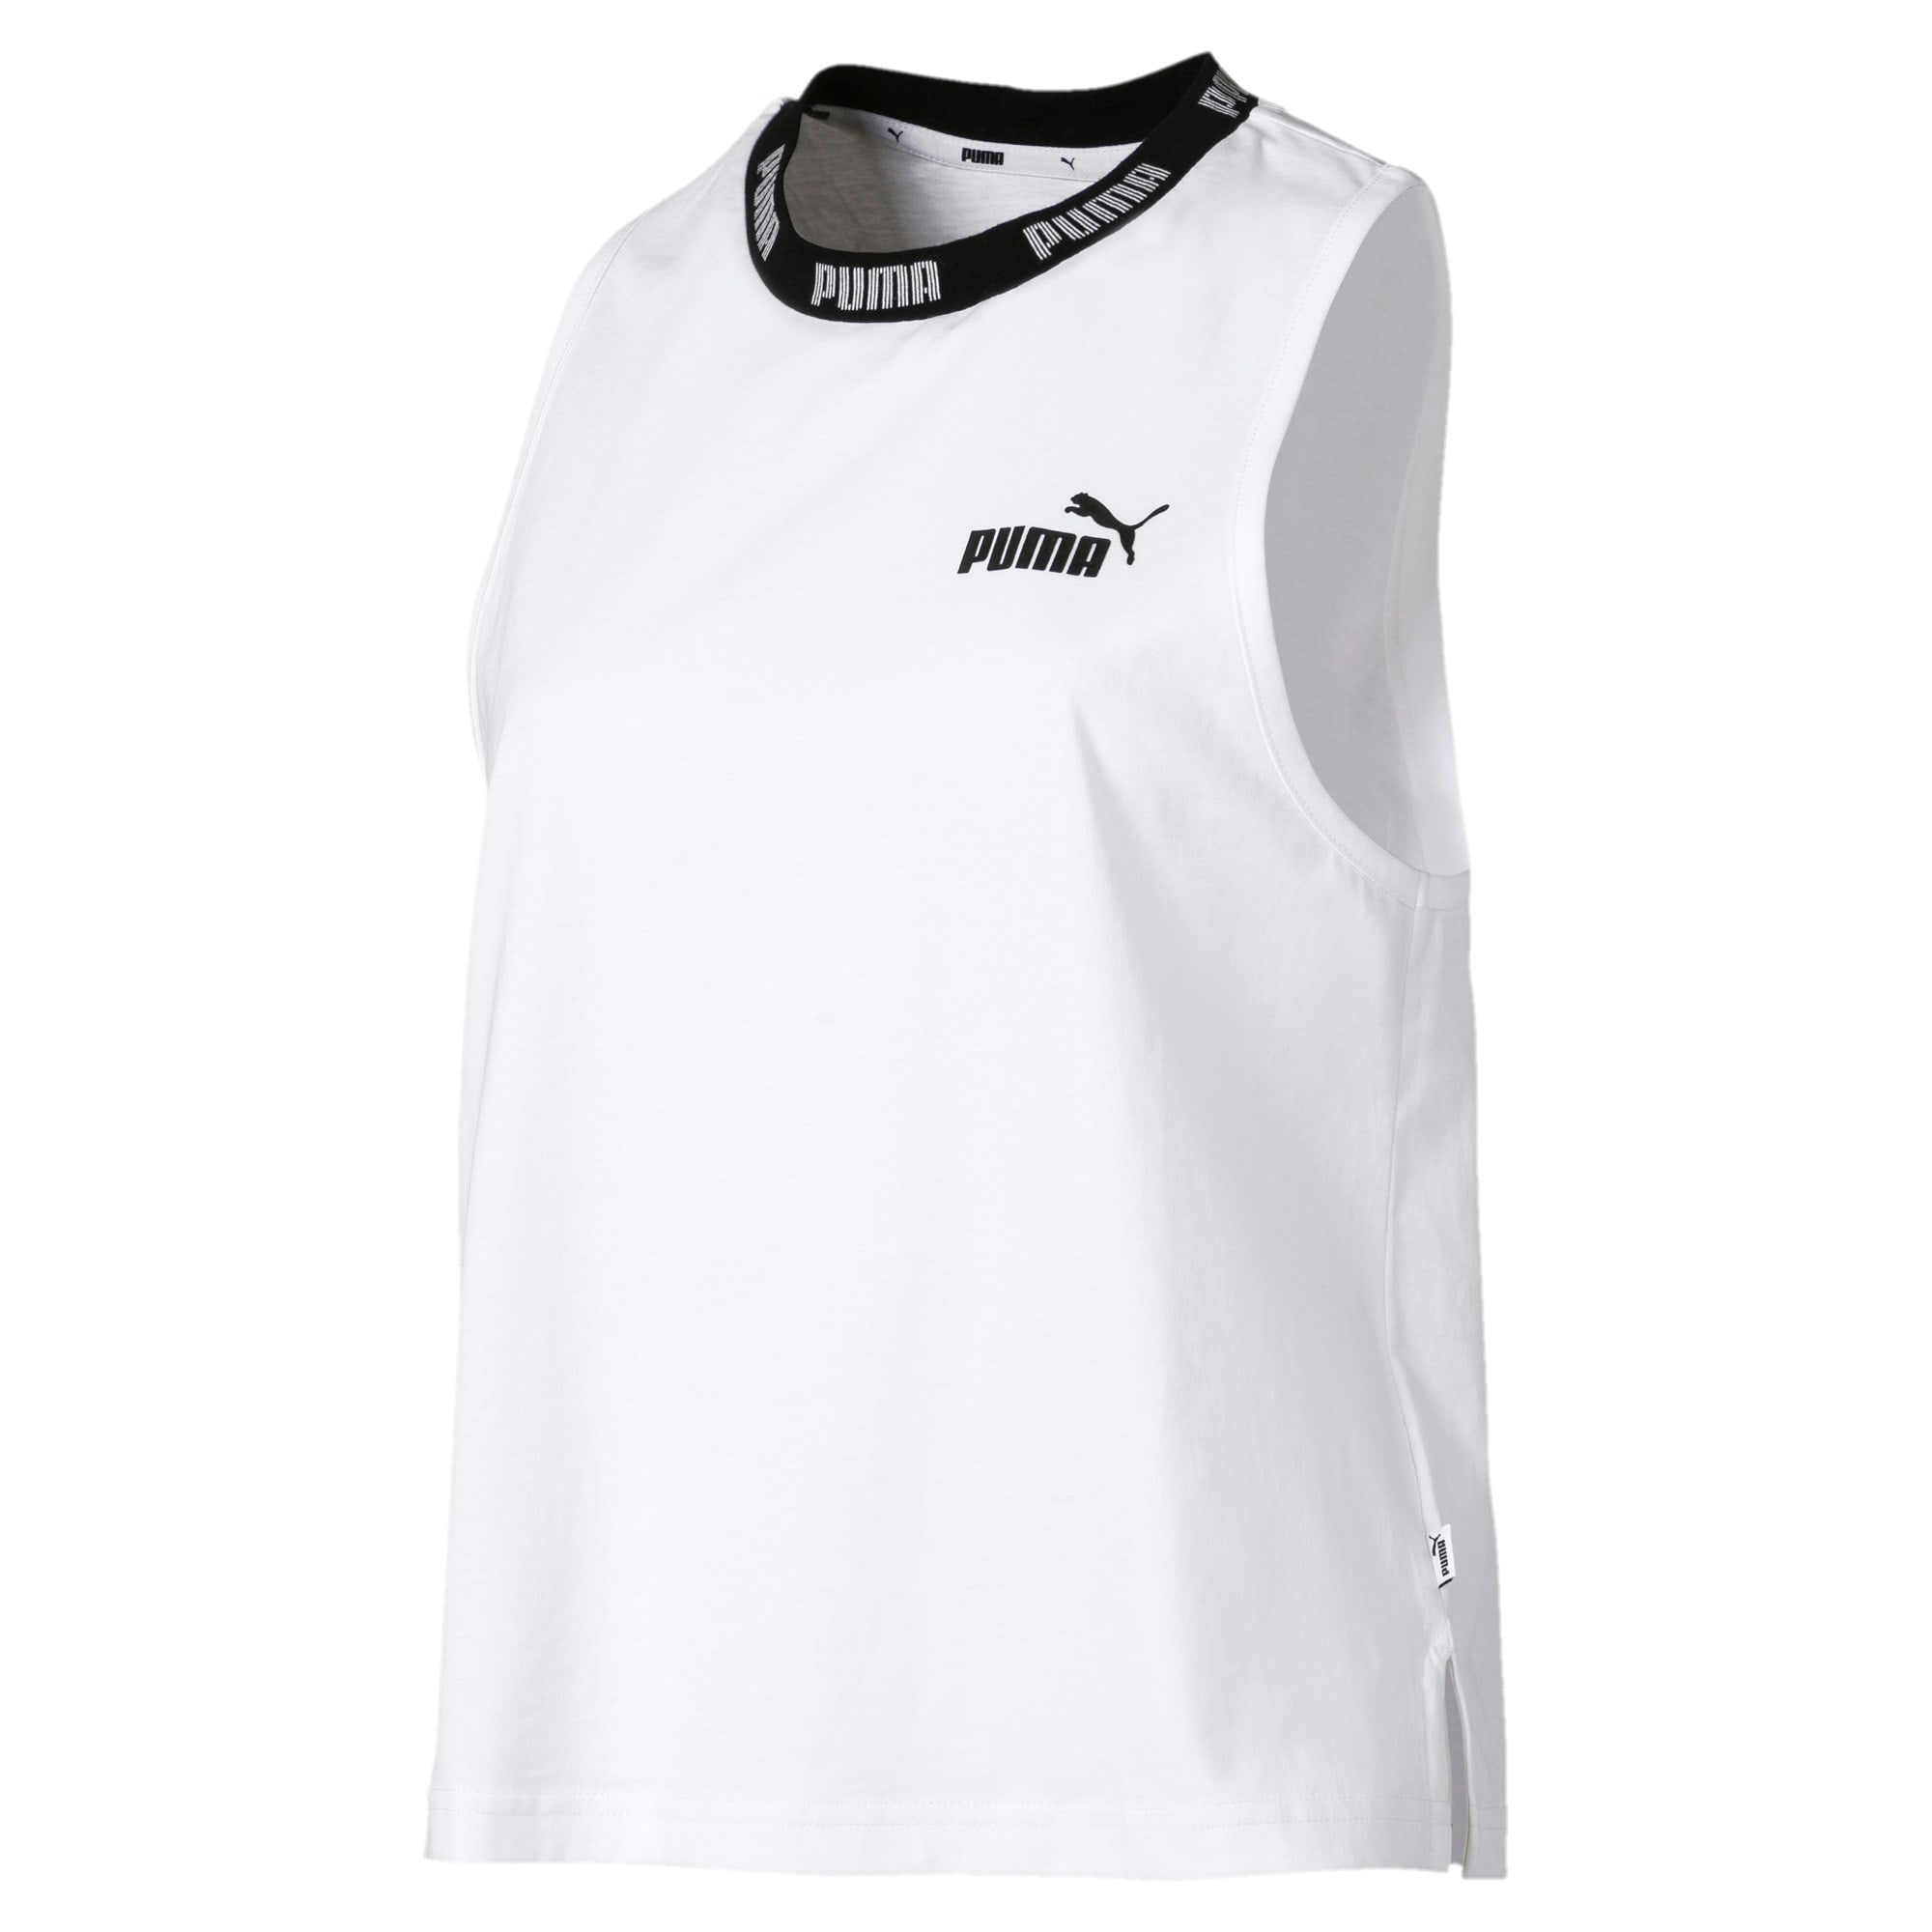 Thumbnail 1 of Amplified Women's Tank Top, Puma White, medium